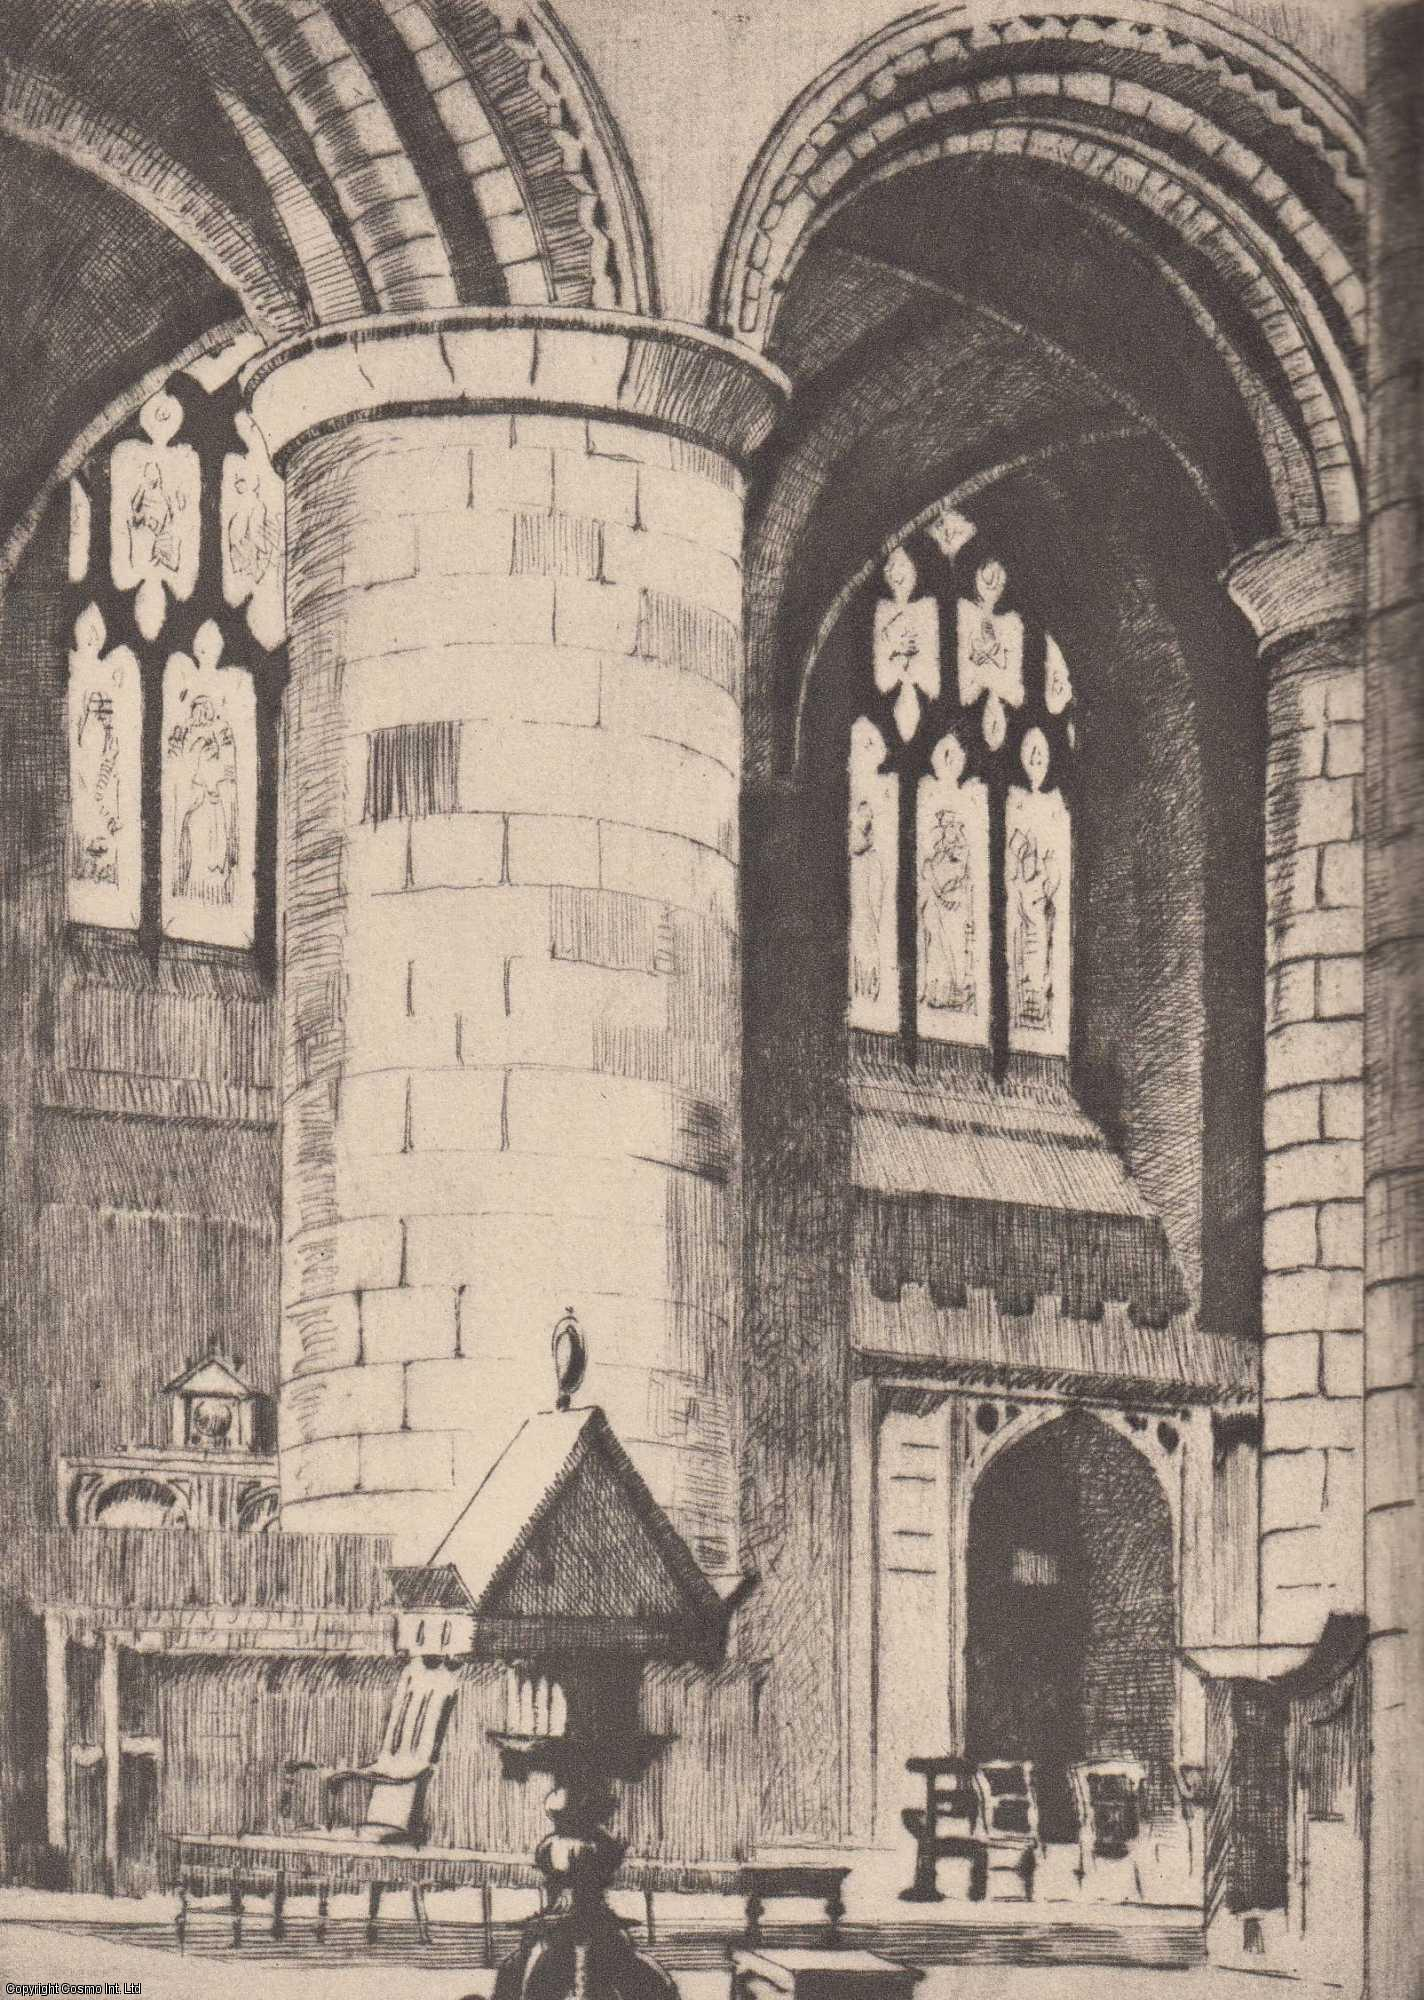 Cathedrals of England: An Artist's Pilgrimage to These Majestic Monuments of Man's Genius and Faith., Wilkinson, Norman